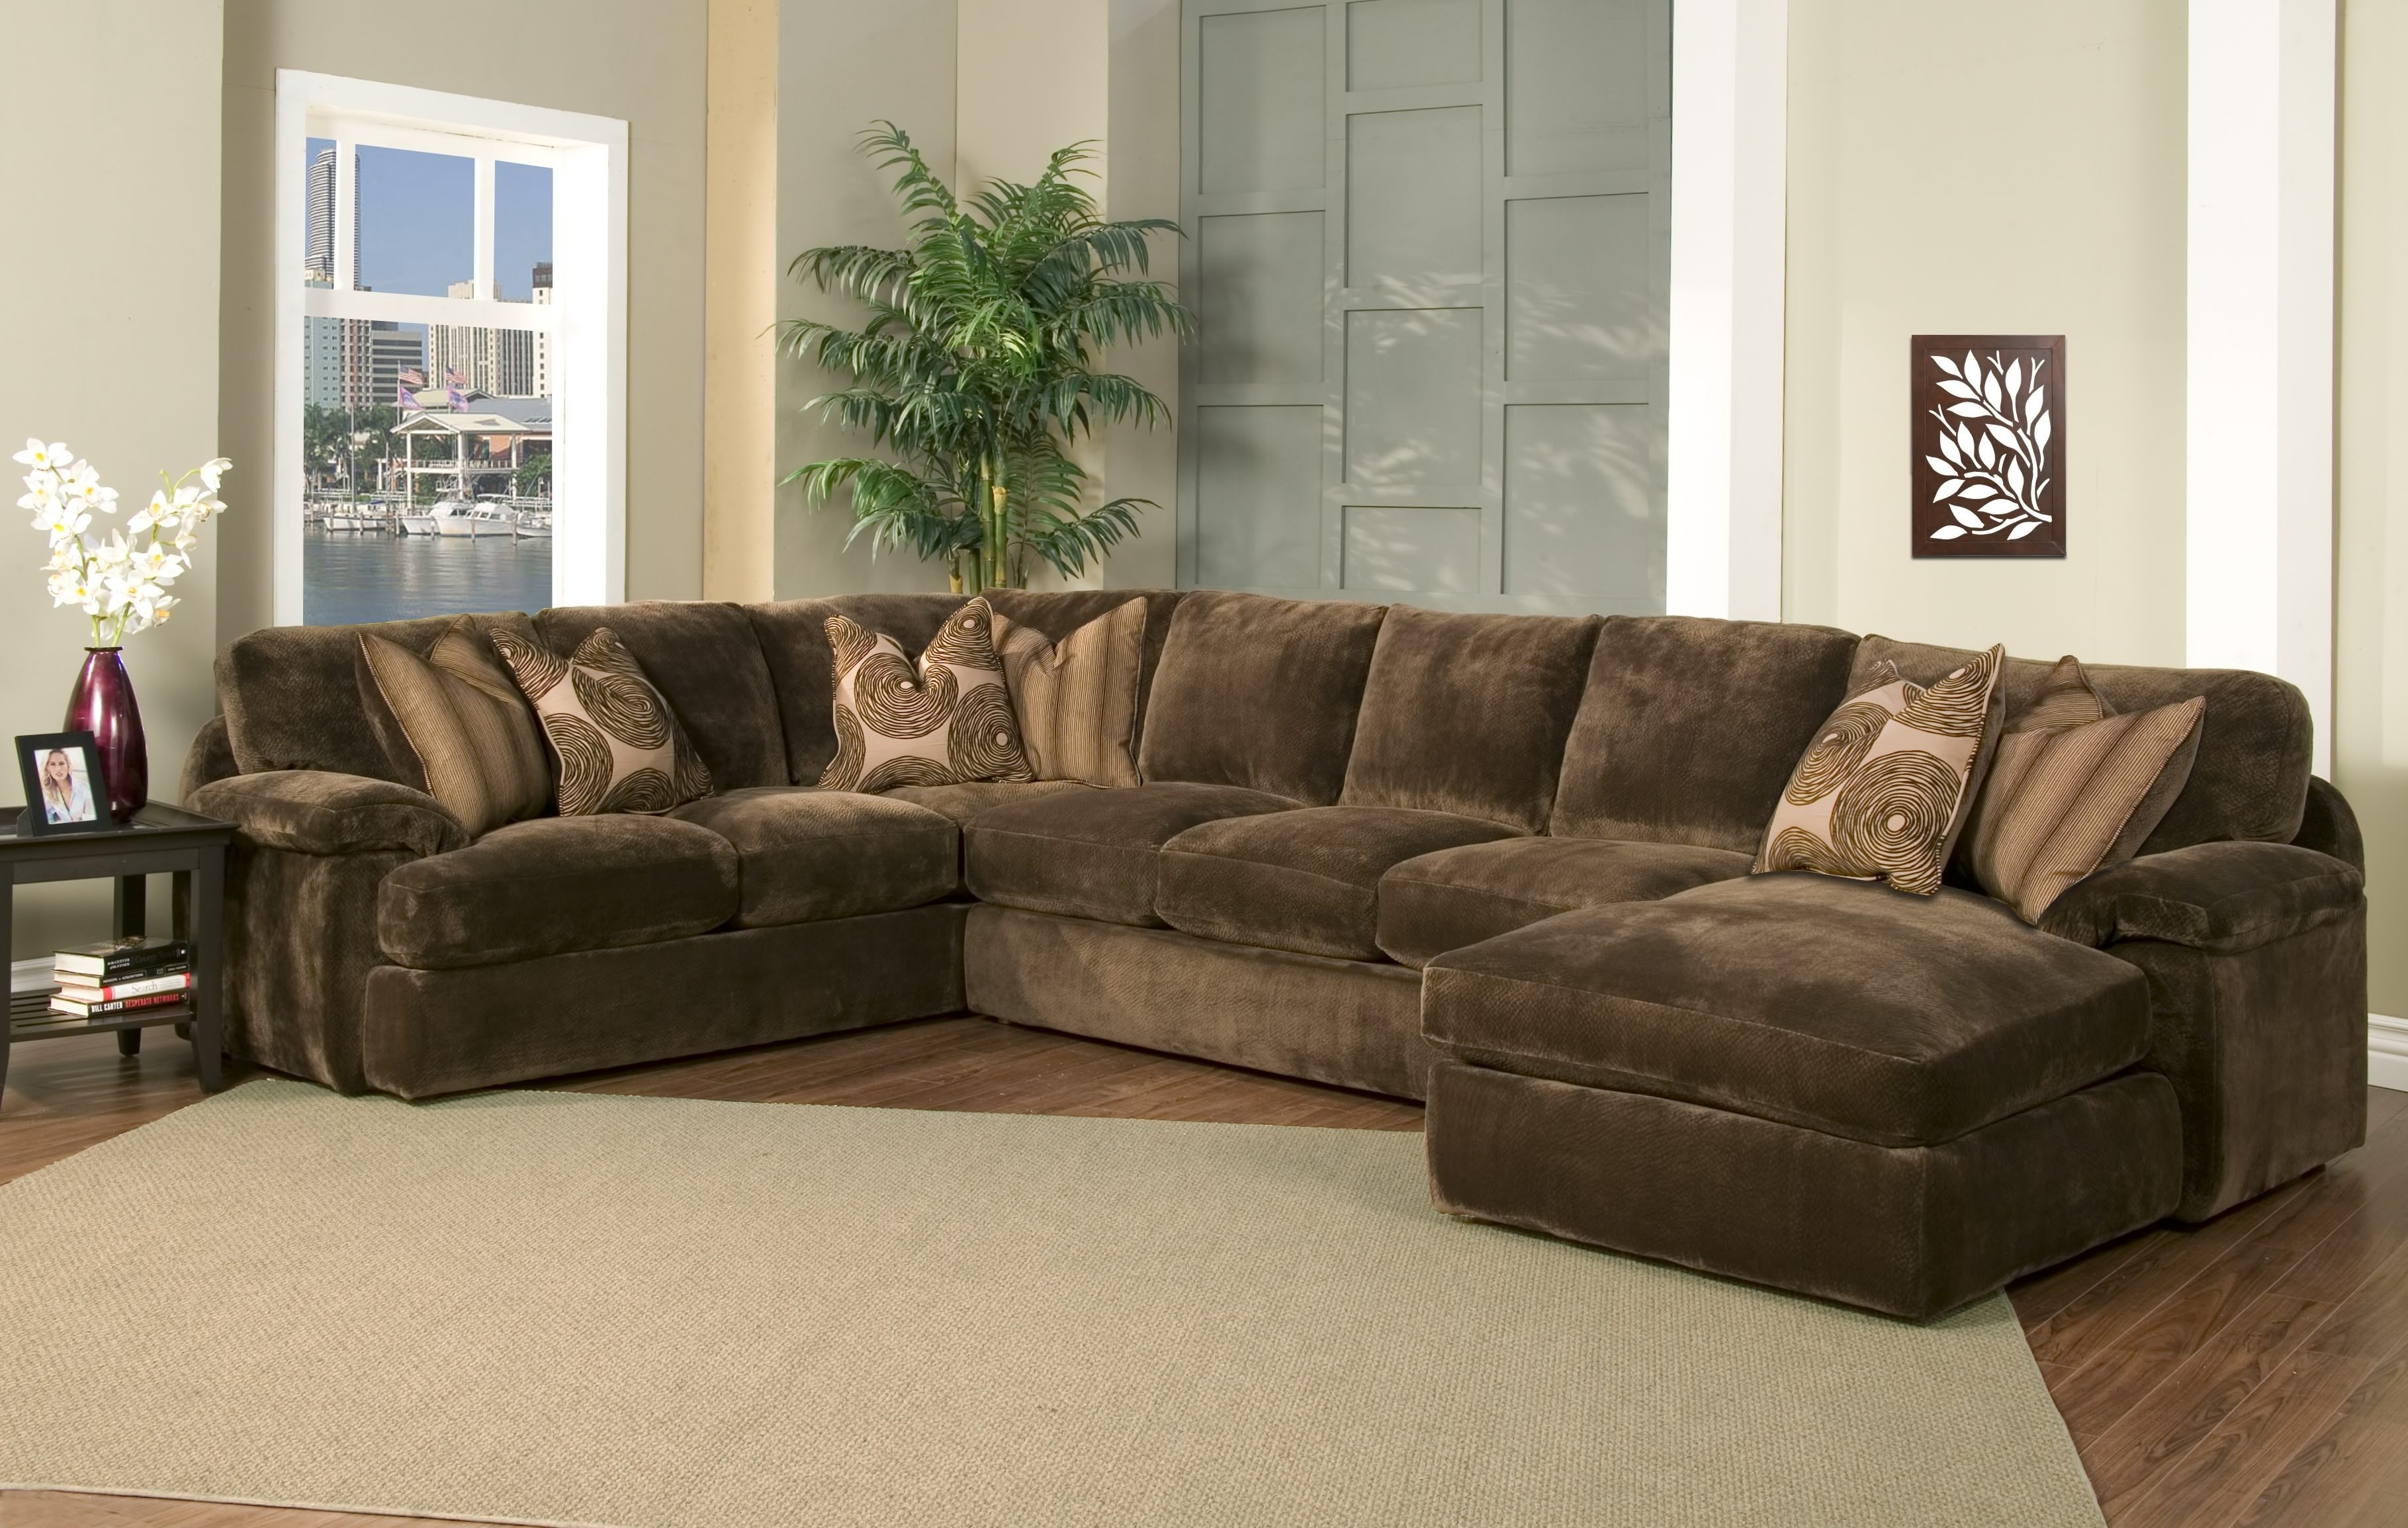 Sectional Sofa Design: Down Sectional Sofa Blend Wrapped Goose Regarding Down Filled Sectional Sofas (Image 10 of 10)